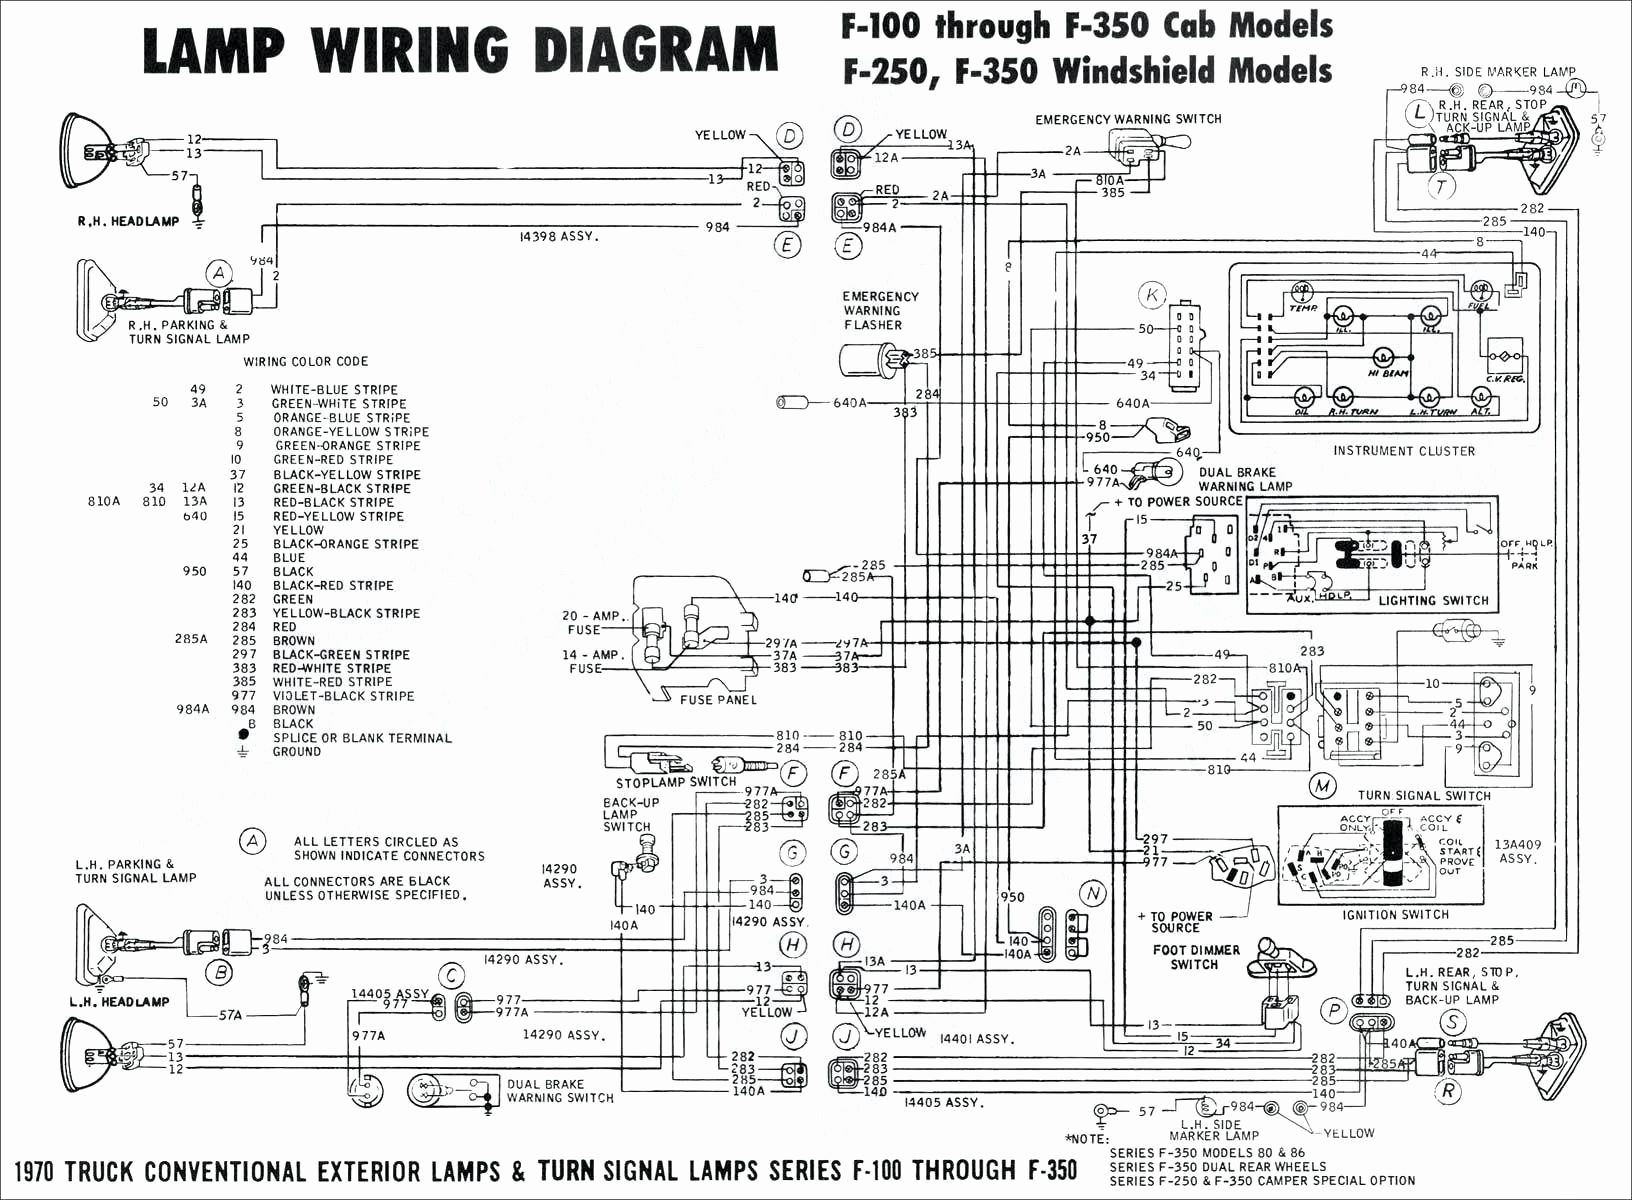 7 Pin Trailer Wiring Diagram Gmc | Trailer Wiring Diagram